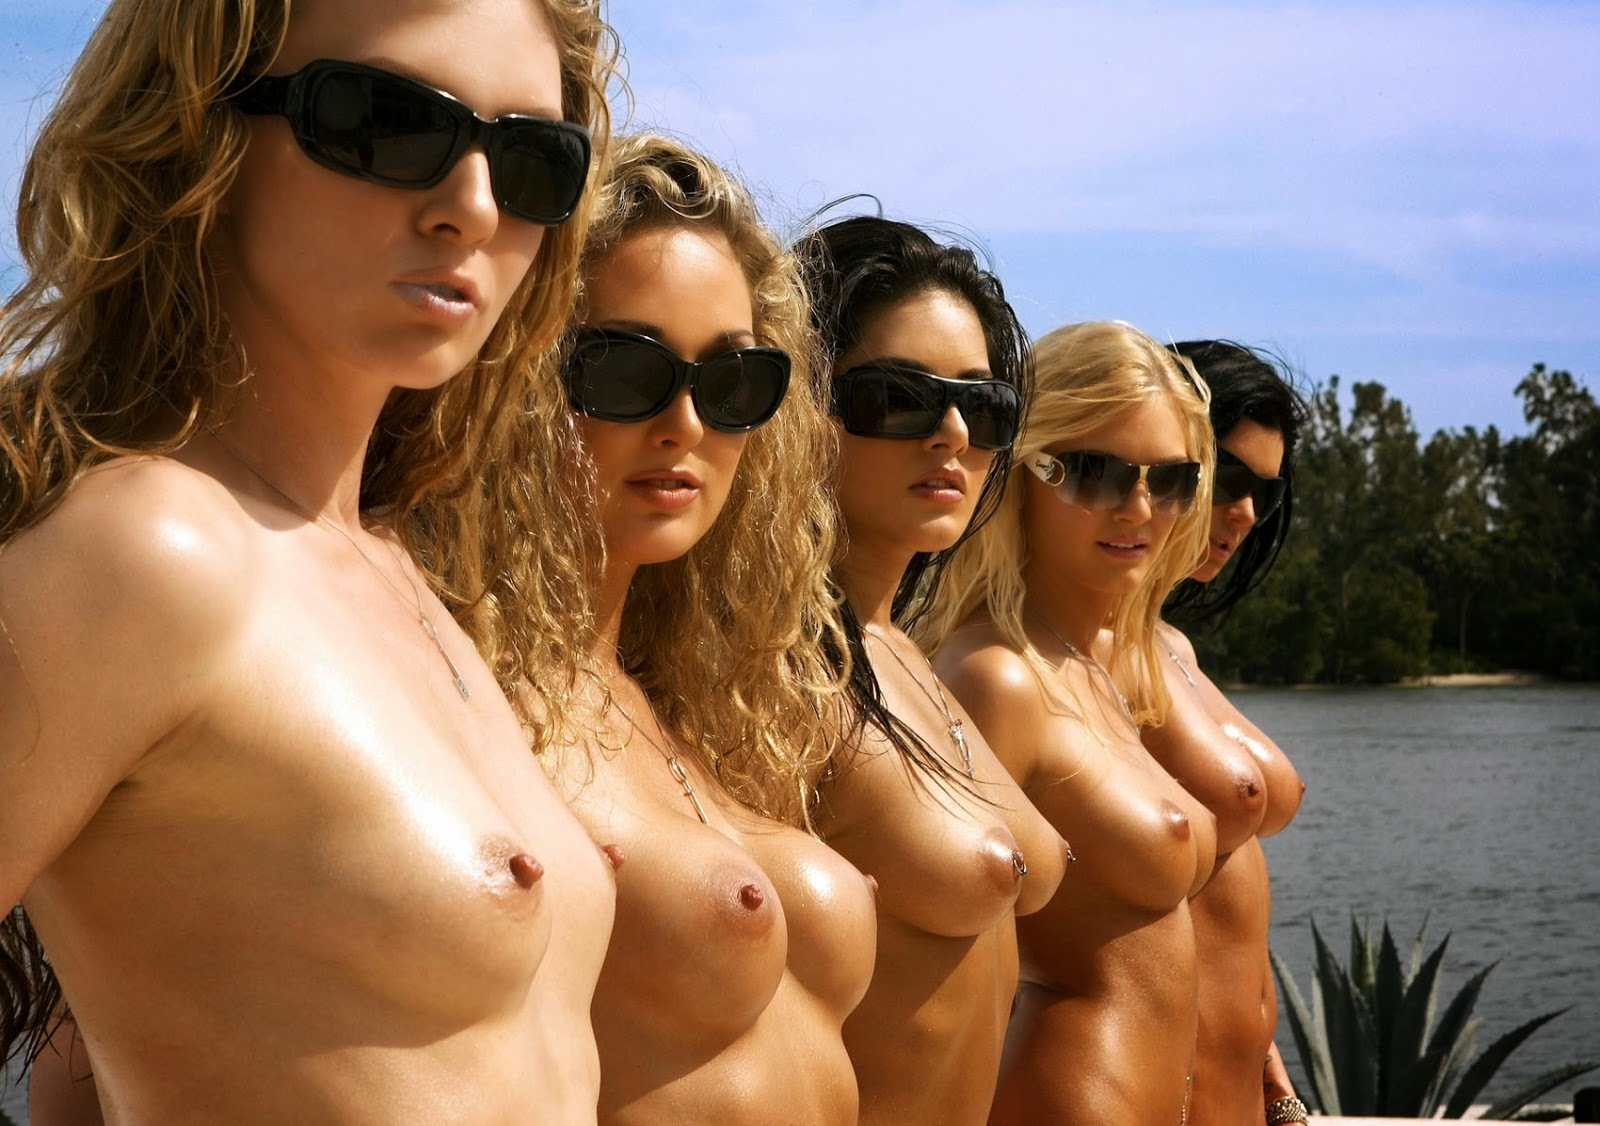 College girls topless m — photo 1